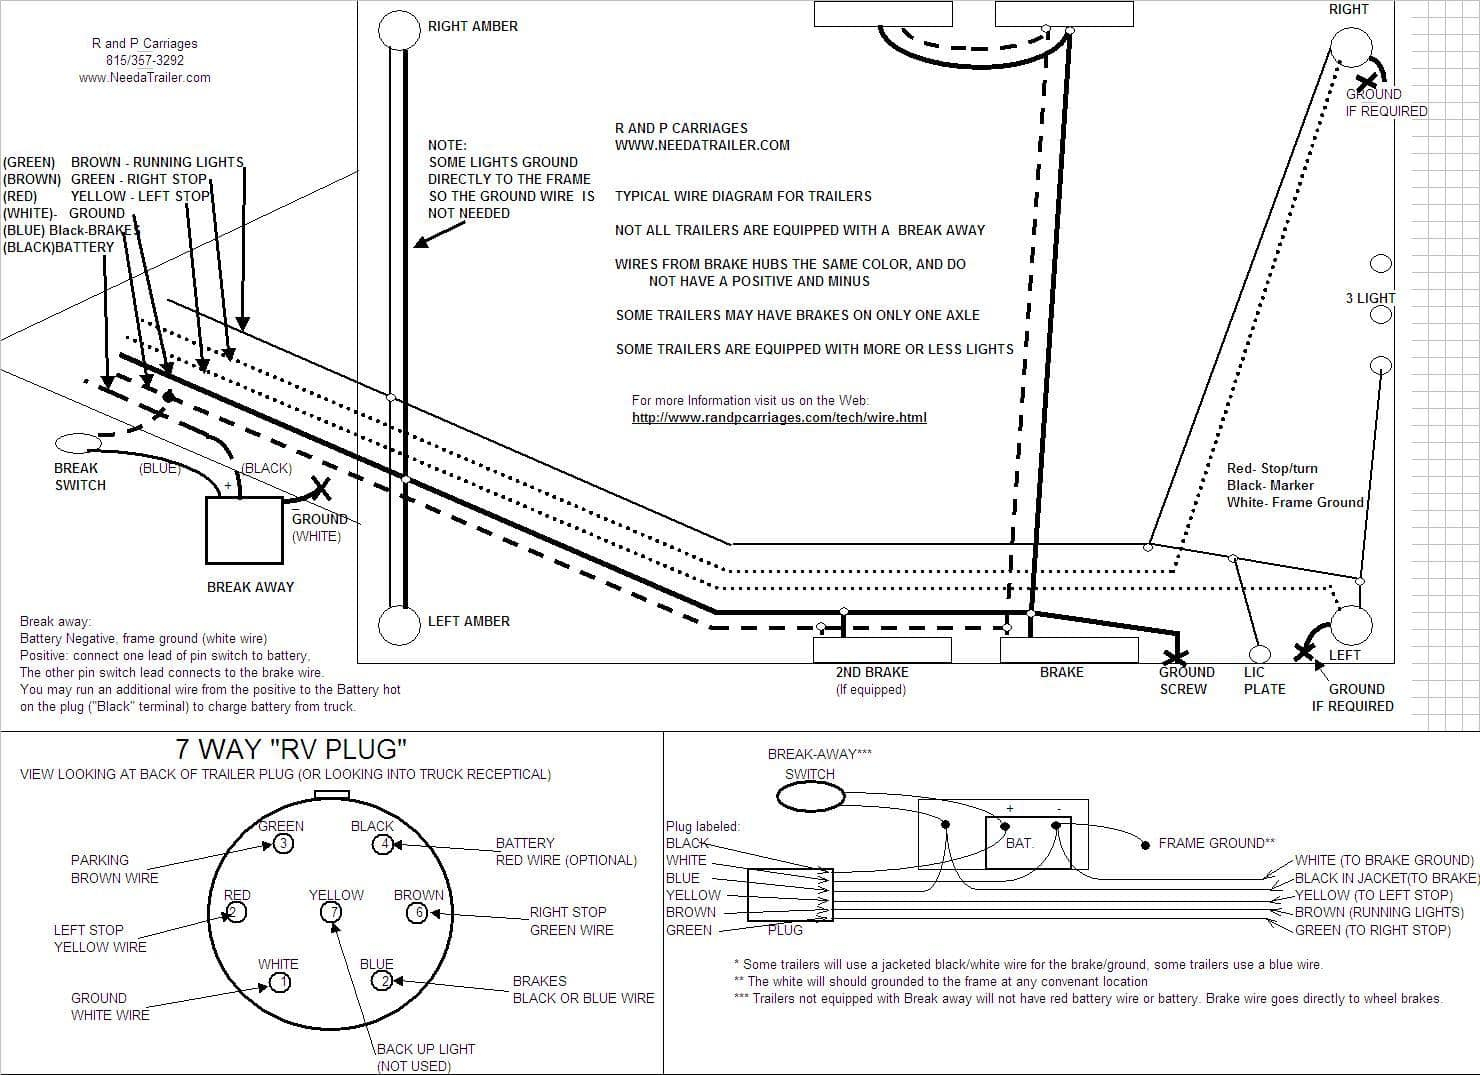 7 Way Plug Information | R And P Carriages | Cargo, Utility, Dump - Trailer Wiring Diagram No White Wire